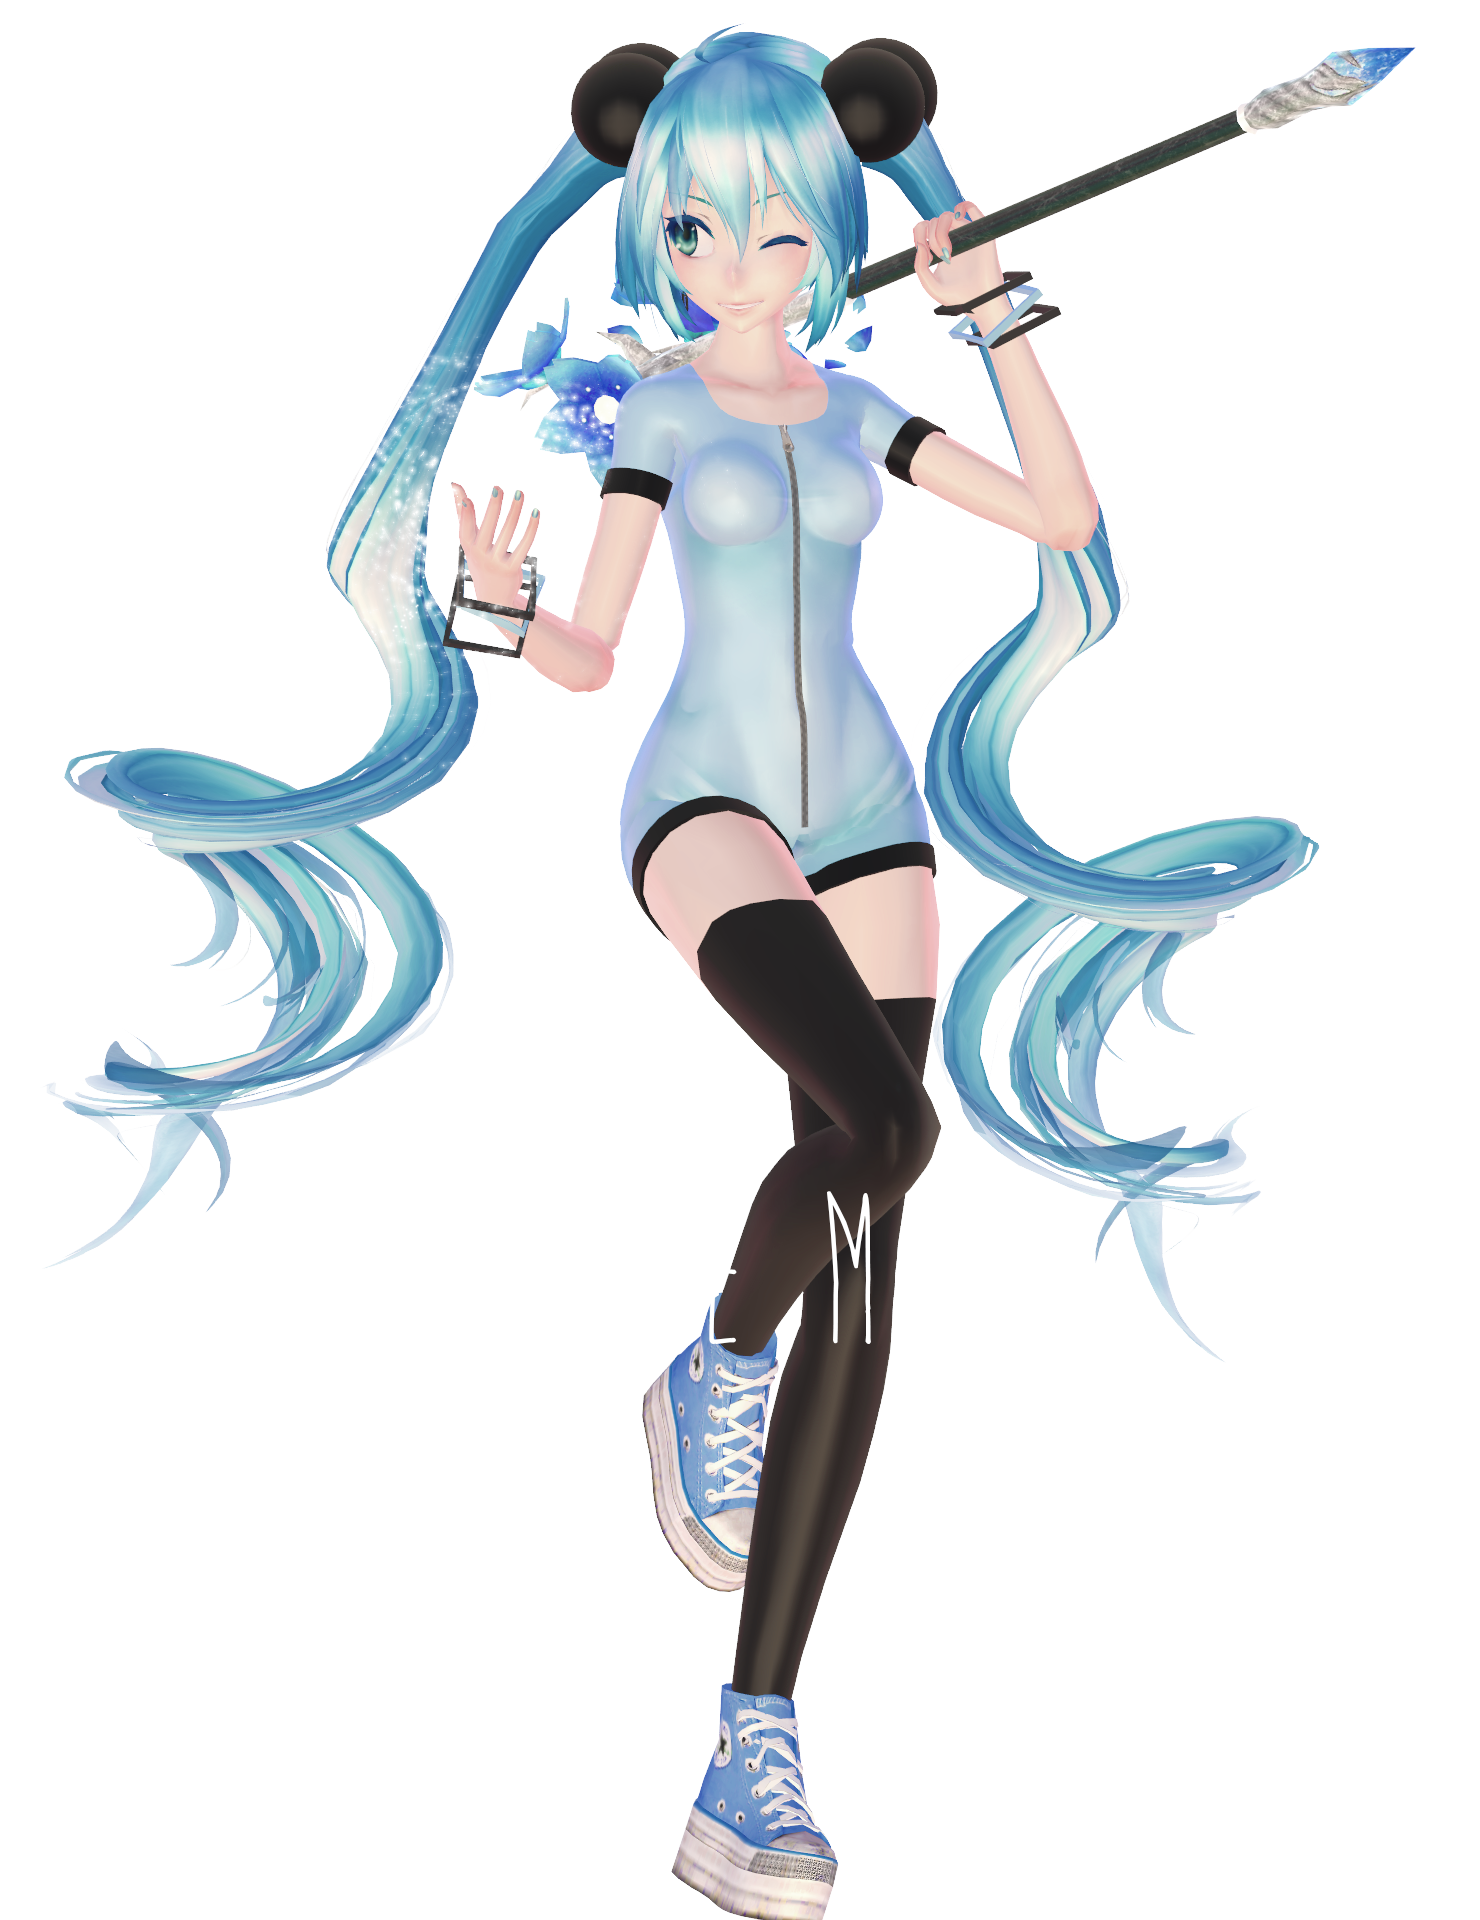 Mmd dl miku arcade rpg model by nousernameincluded on for Deviantart mmd